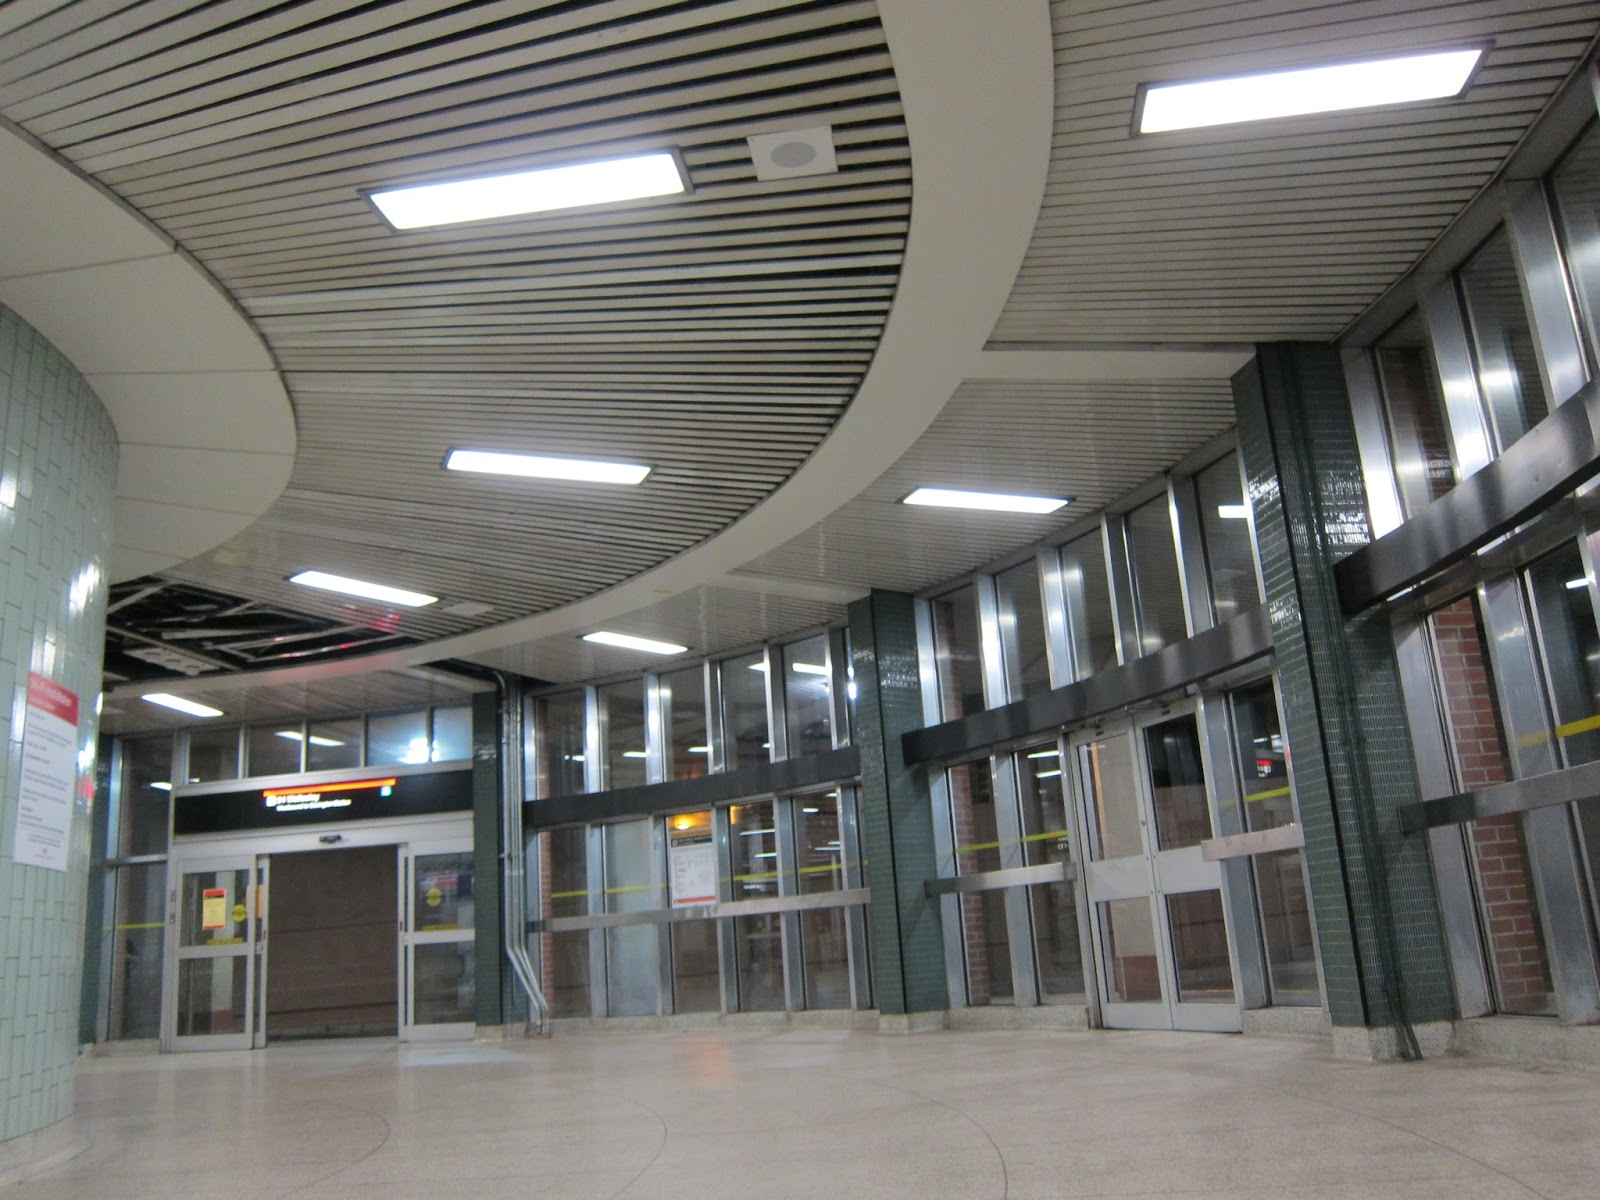 Wellesley station bus platform interior